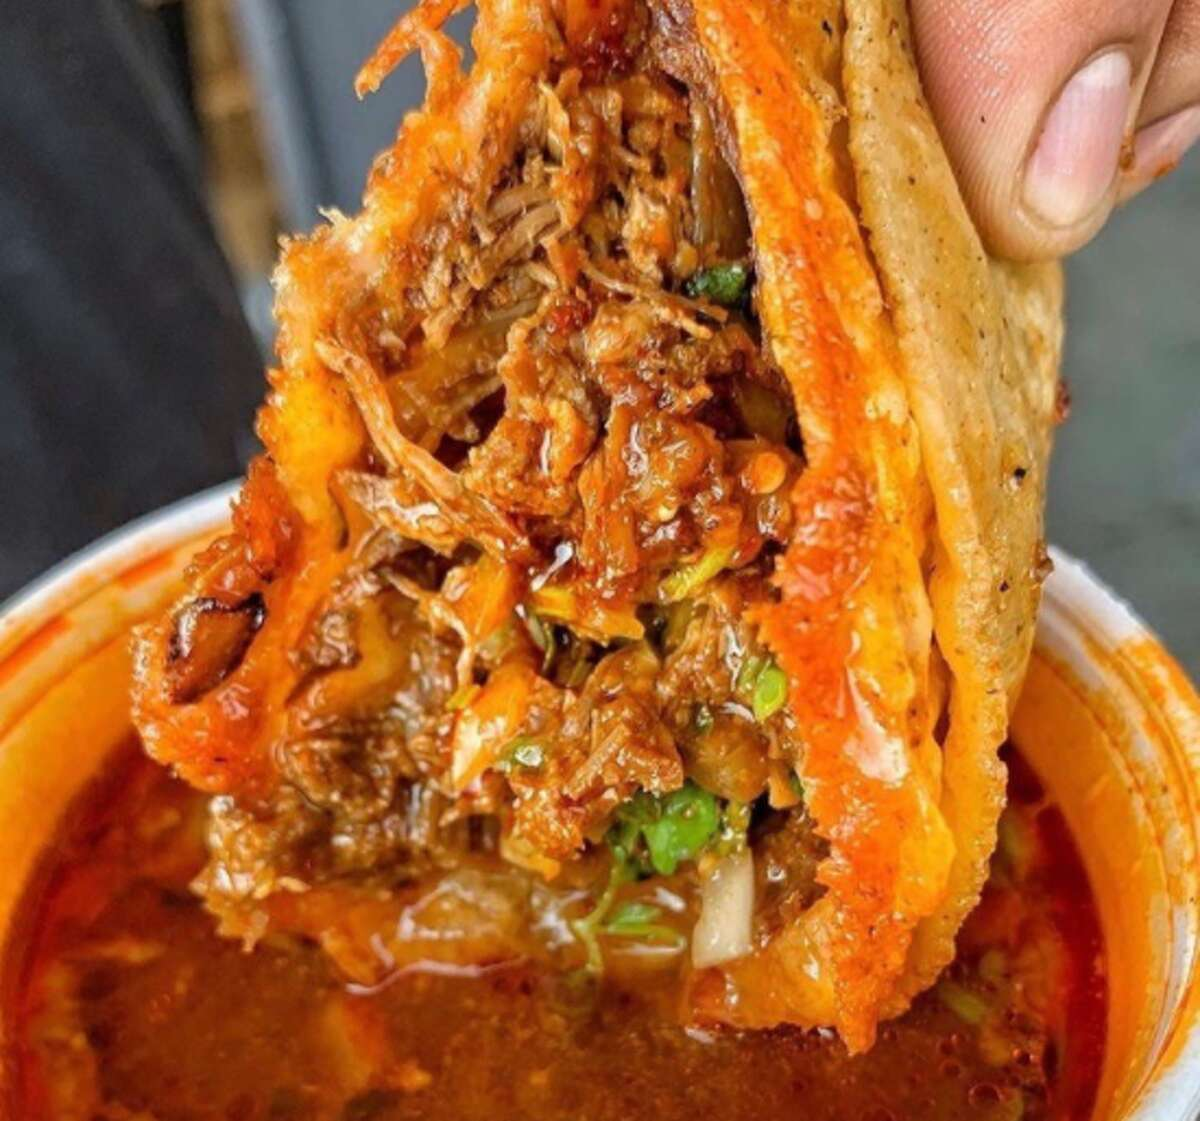 Birria is a spicy meat stew dish usually made with beef, lamb or goat. It's served with a side of broth from the stew kettle for dipping. Meredith Avila said their meat will be beef that comes from Tijuana, Mexico.